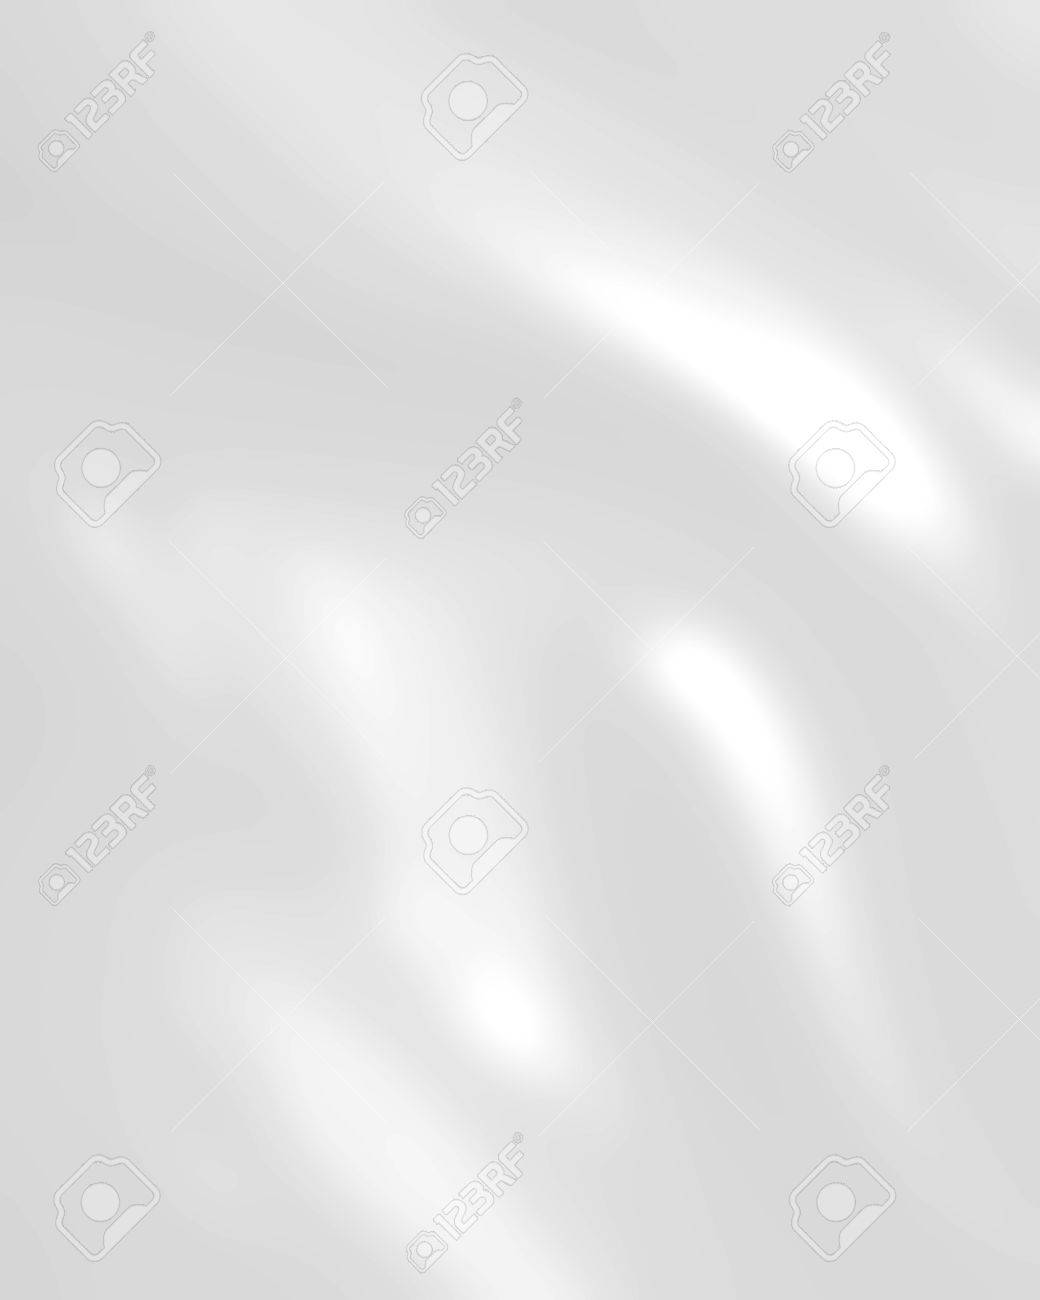 White Wedding Background With Silk Satin Or Cloth Folds And Stock